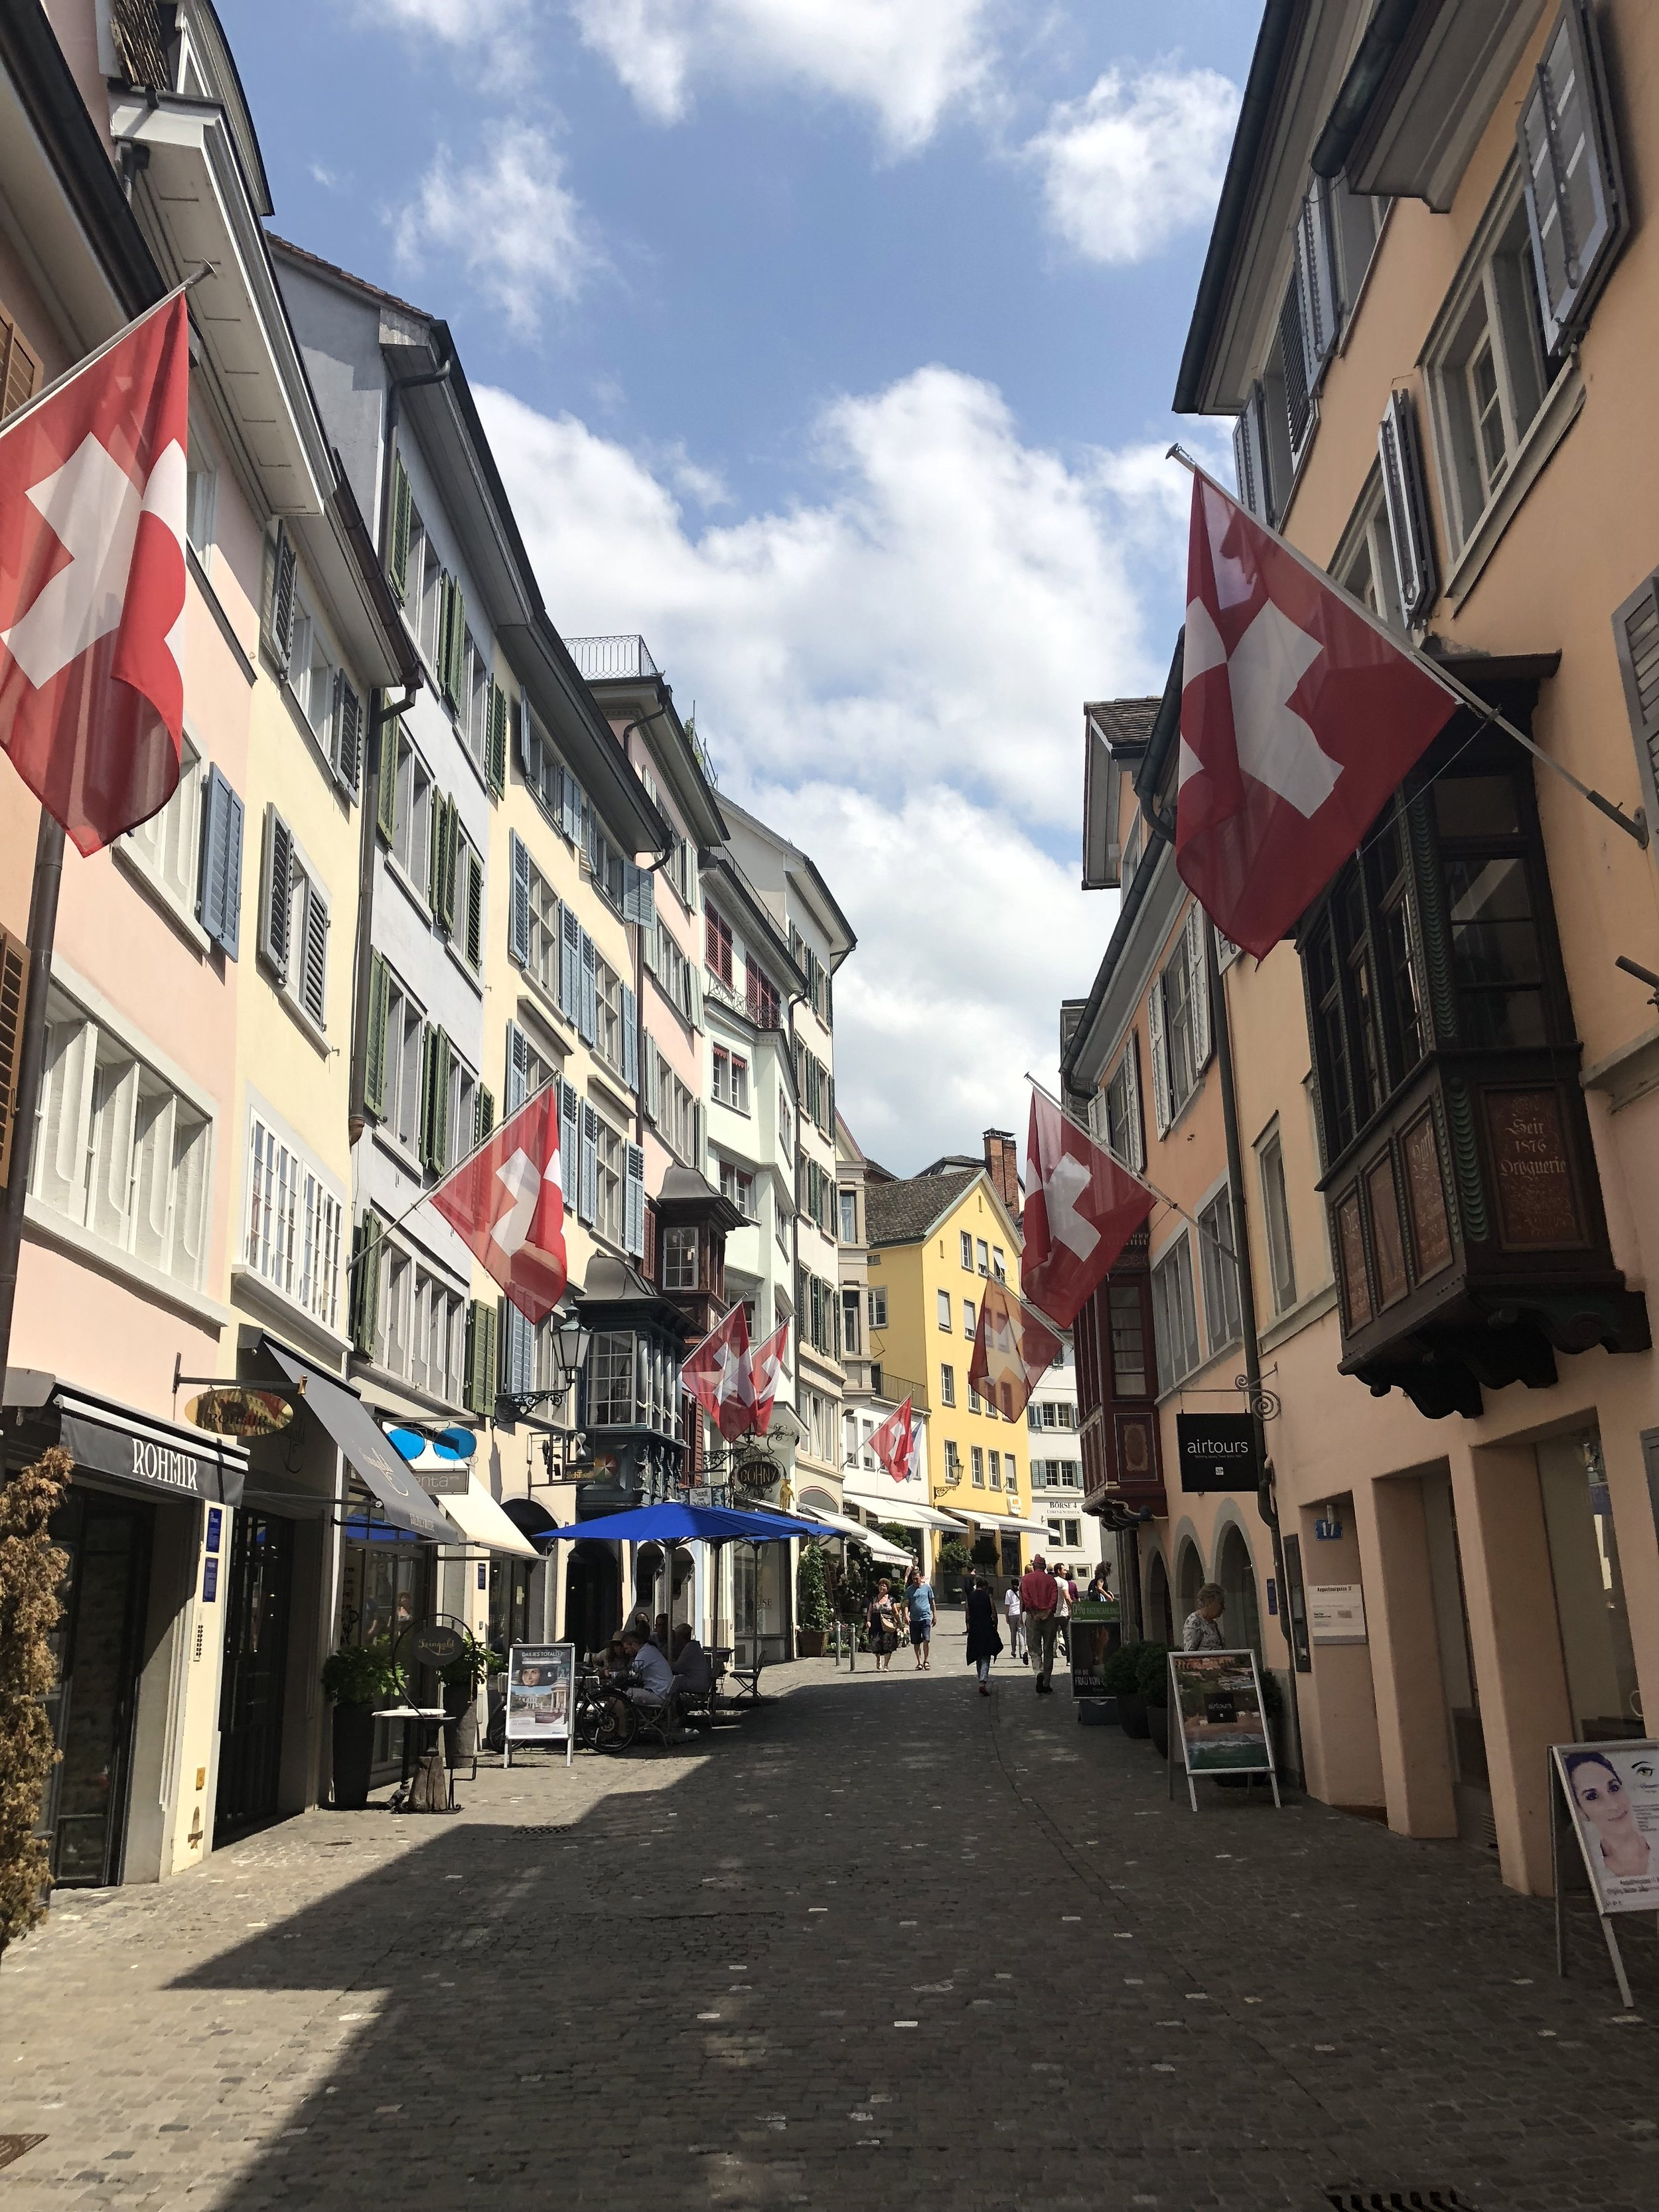 Zurich, you were good to us and now we are off to our next stop: Lurcerne.